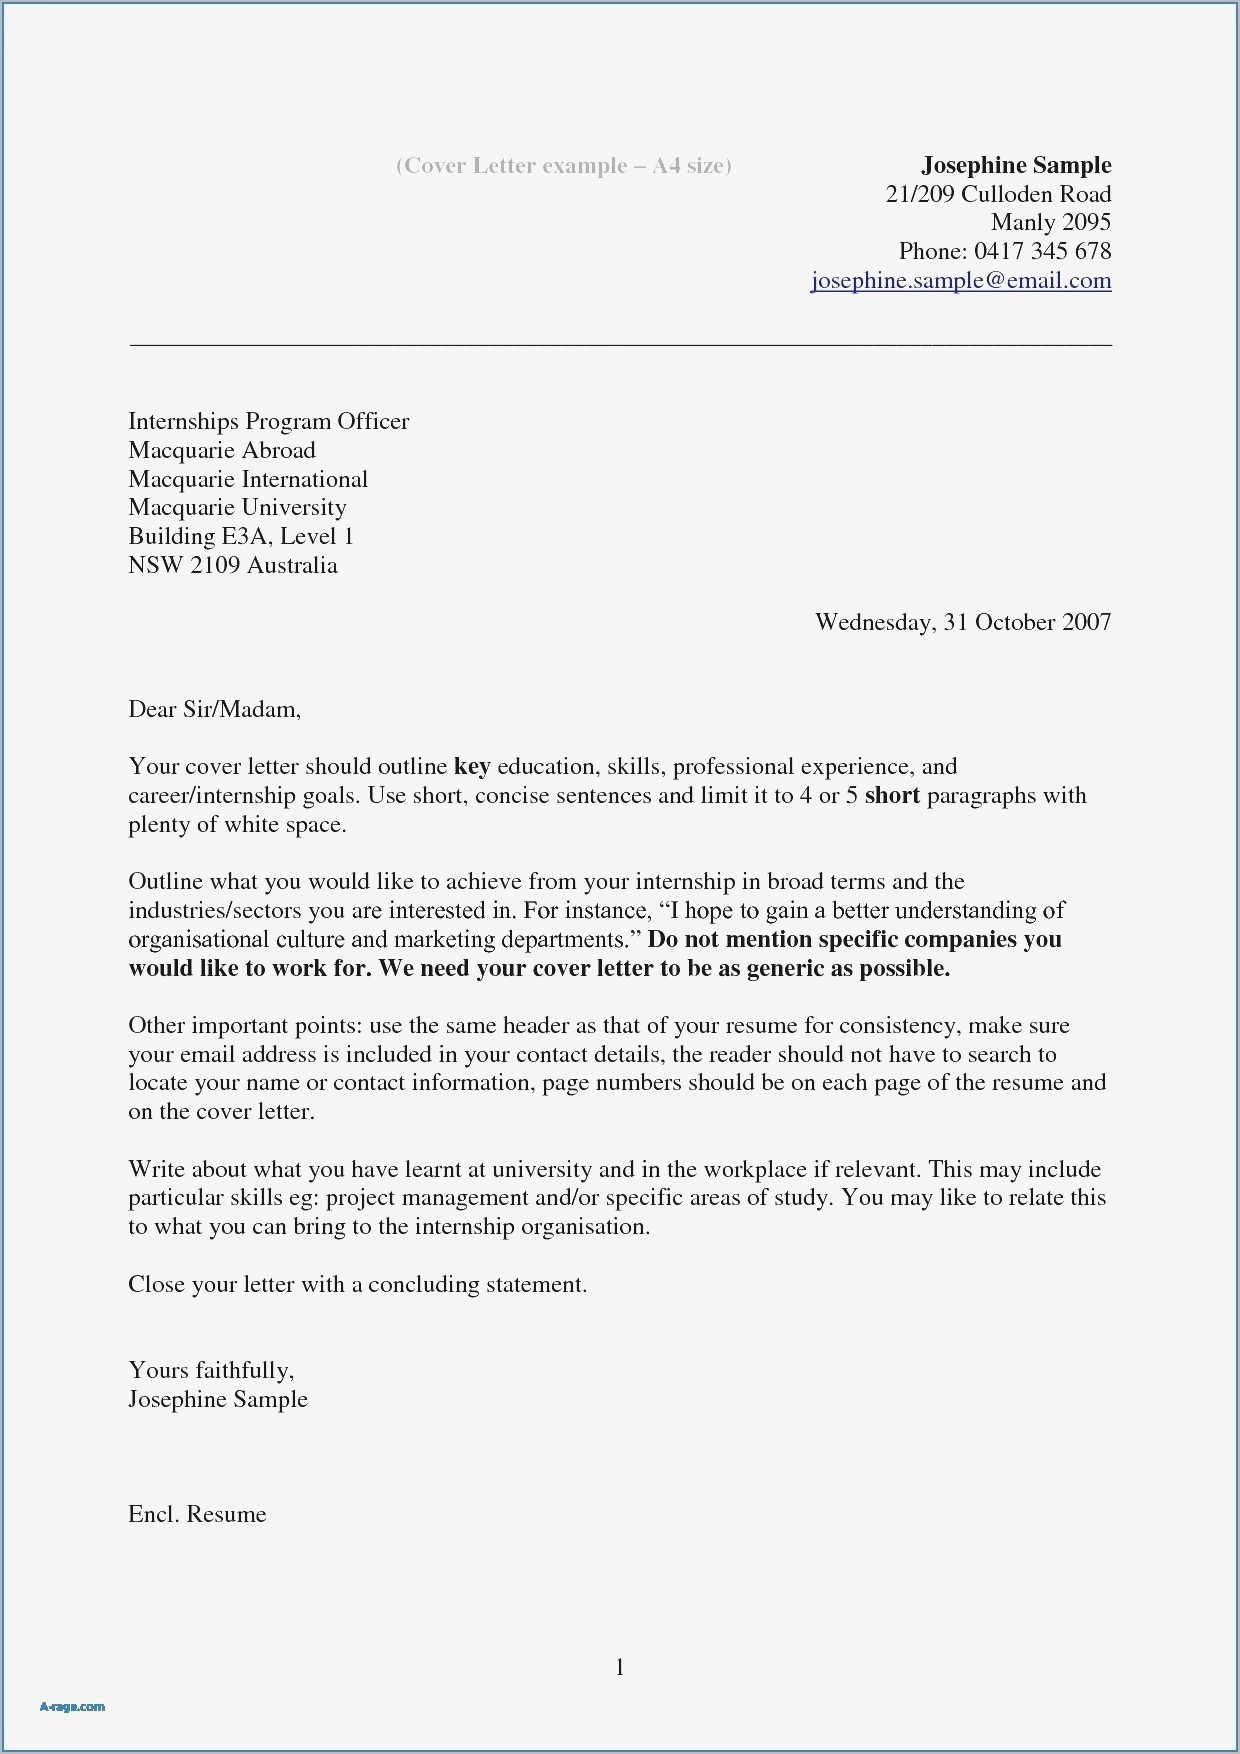 Online Letter Template - Free Resume Cover Letter Beautiful Best Pr Resume Template Elegant